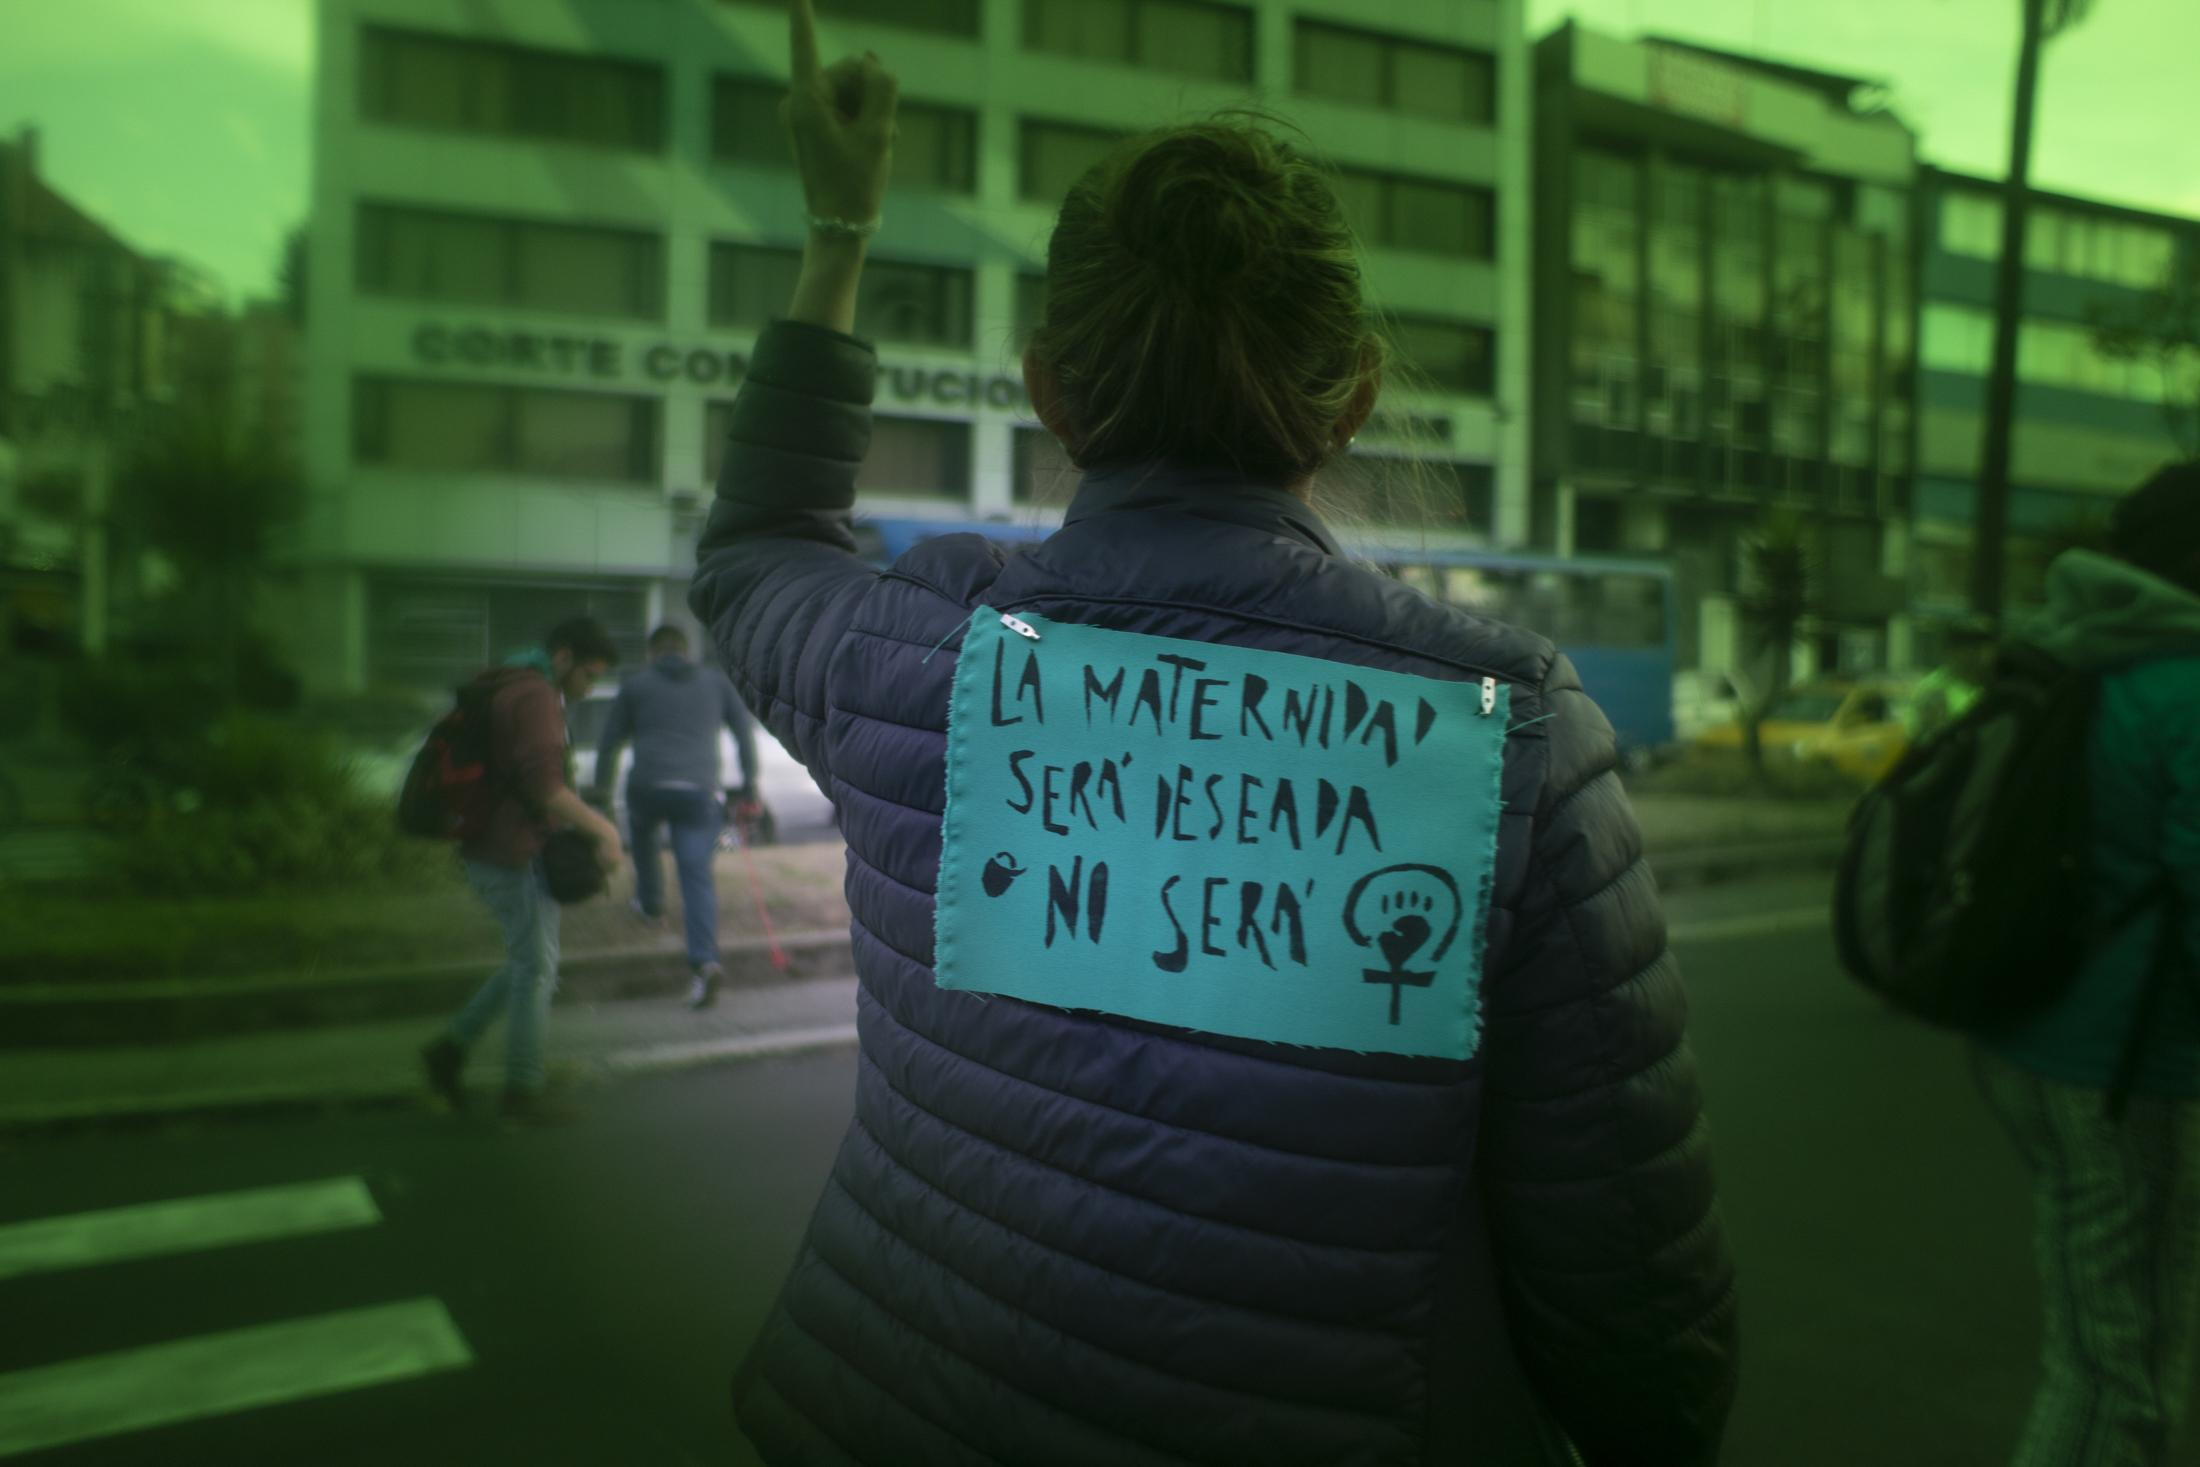 Hundreds of women marched in Quito on the international day for the legalization of abortion in Latin America and the Caribbean. Currently in Ecuador, abortion is legal only in the case of rape of a woman with a mental disability or in the event that the pregnancy presents a threat to the life or health of the woman.